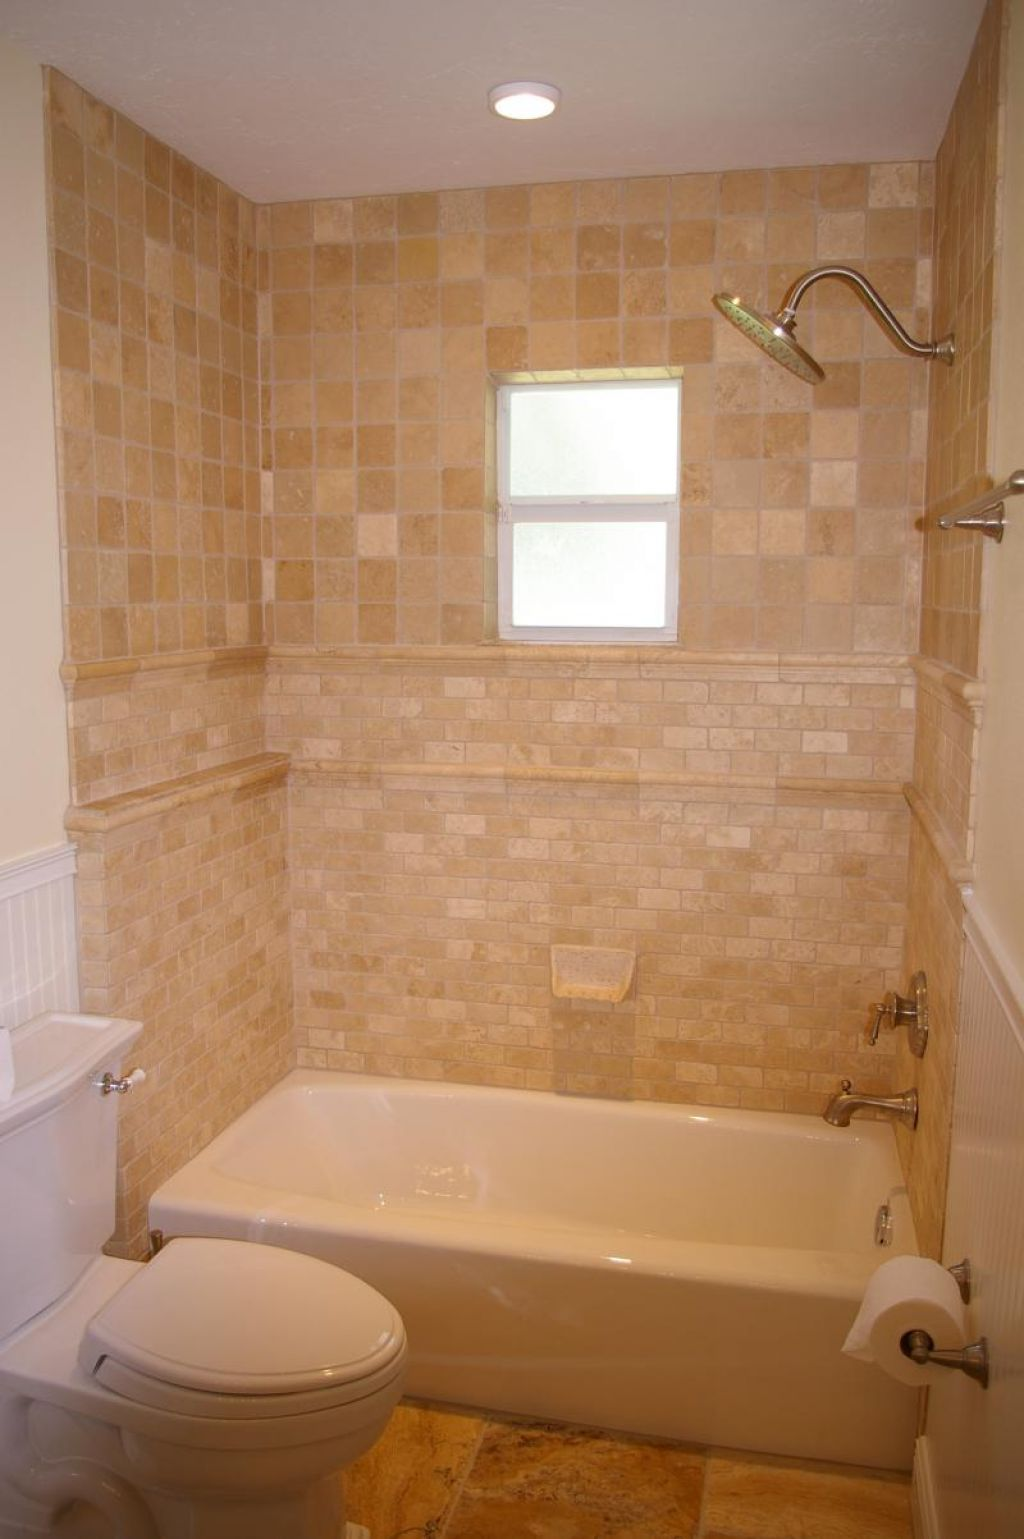 30 shower tile ideas on a budget for Small bathroom tub